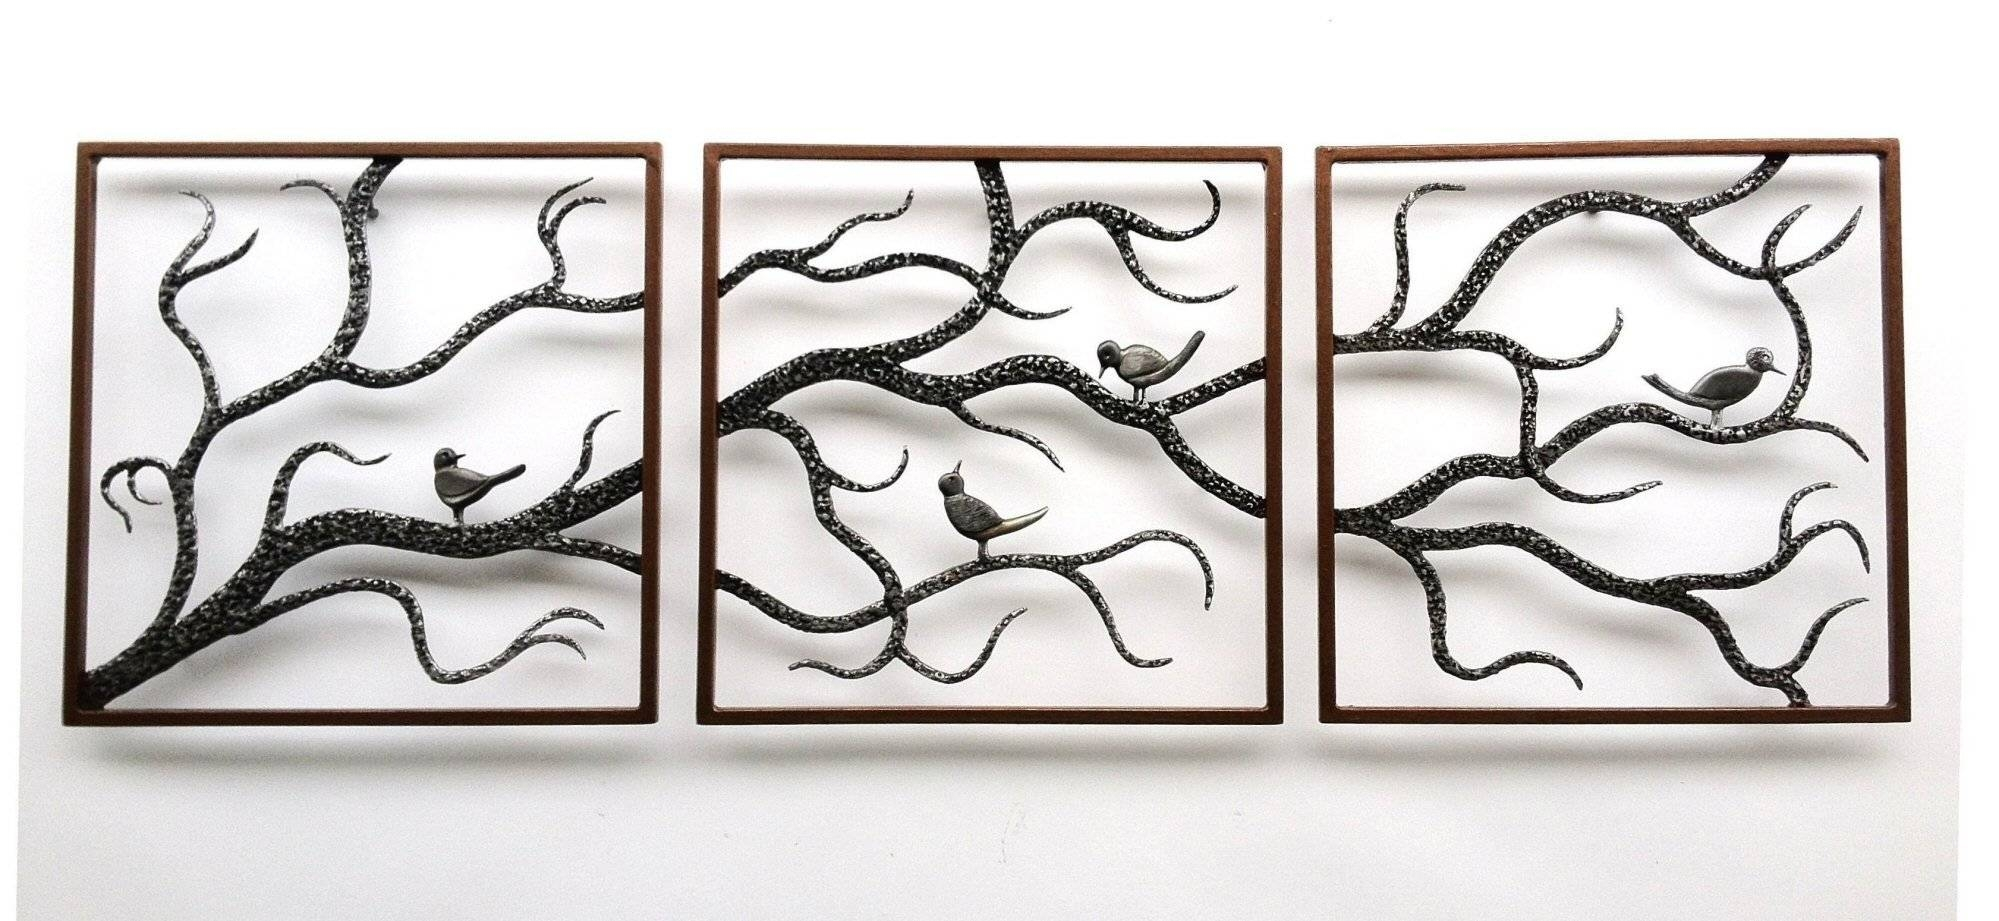 Wall Art Designs: Metal Wall Art Trees Birch Three Framed Cute With Regard To Recent Black Metal Wall Art Decor (View 15 of 20)